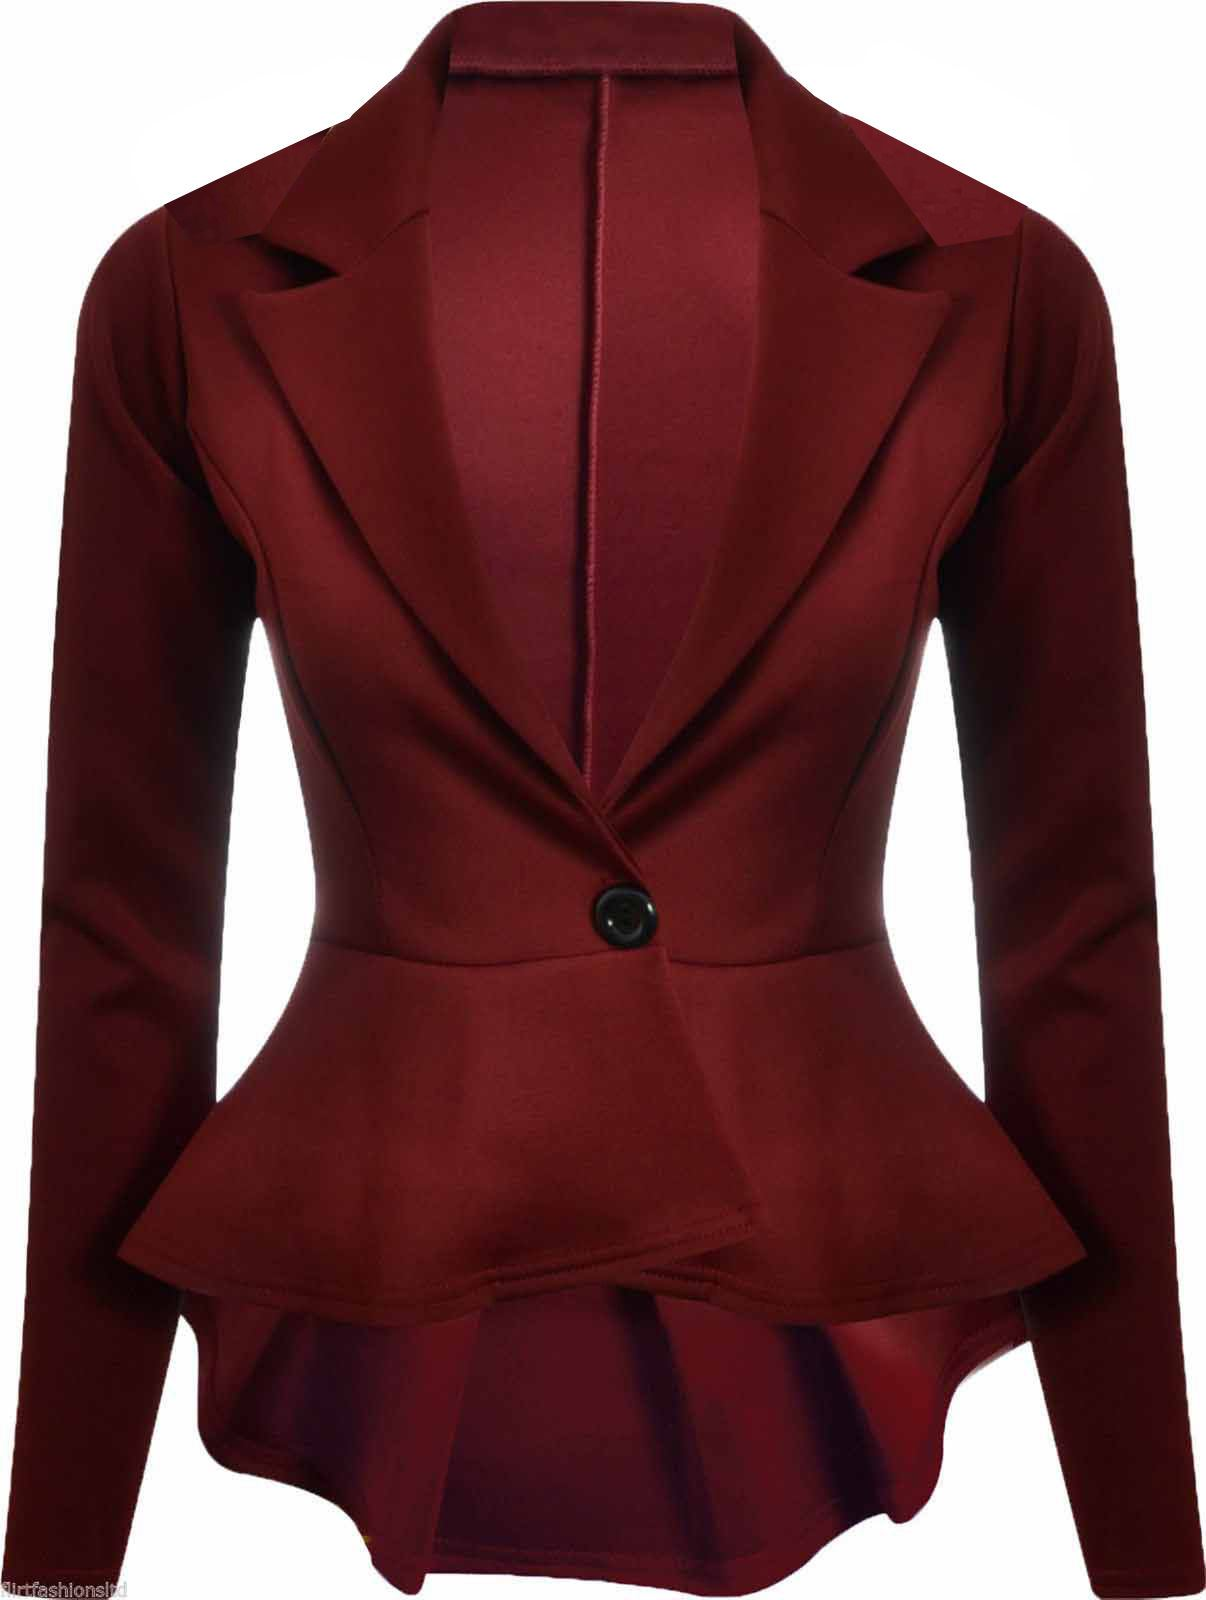 Shop Chadwicks of Boston for classic women's blazers, coats, vests & outerwear online. Our outwear is available in misses, petite, tall & plus sizes.